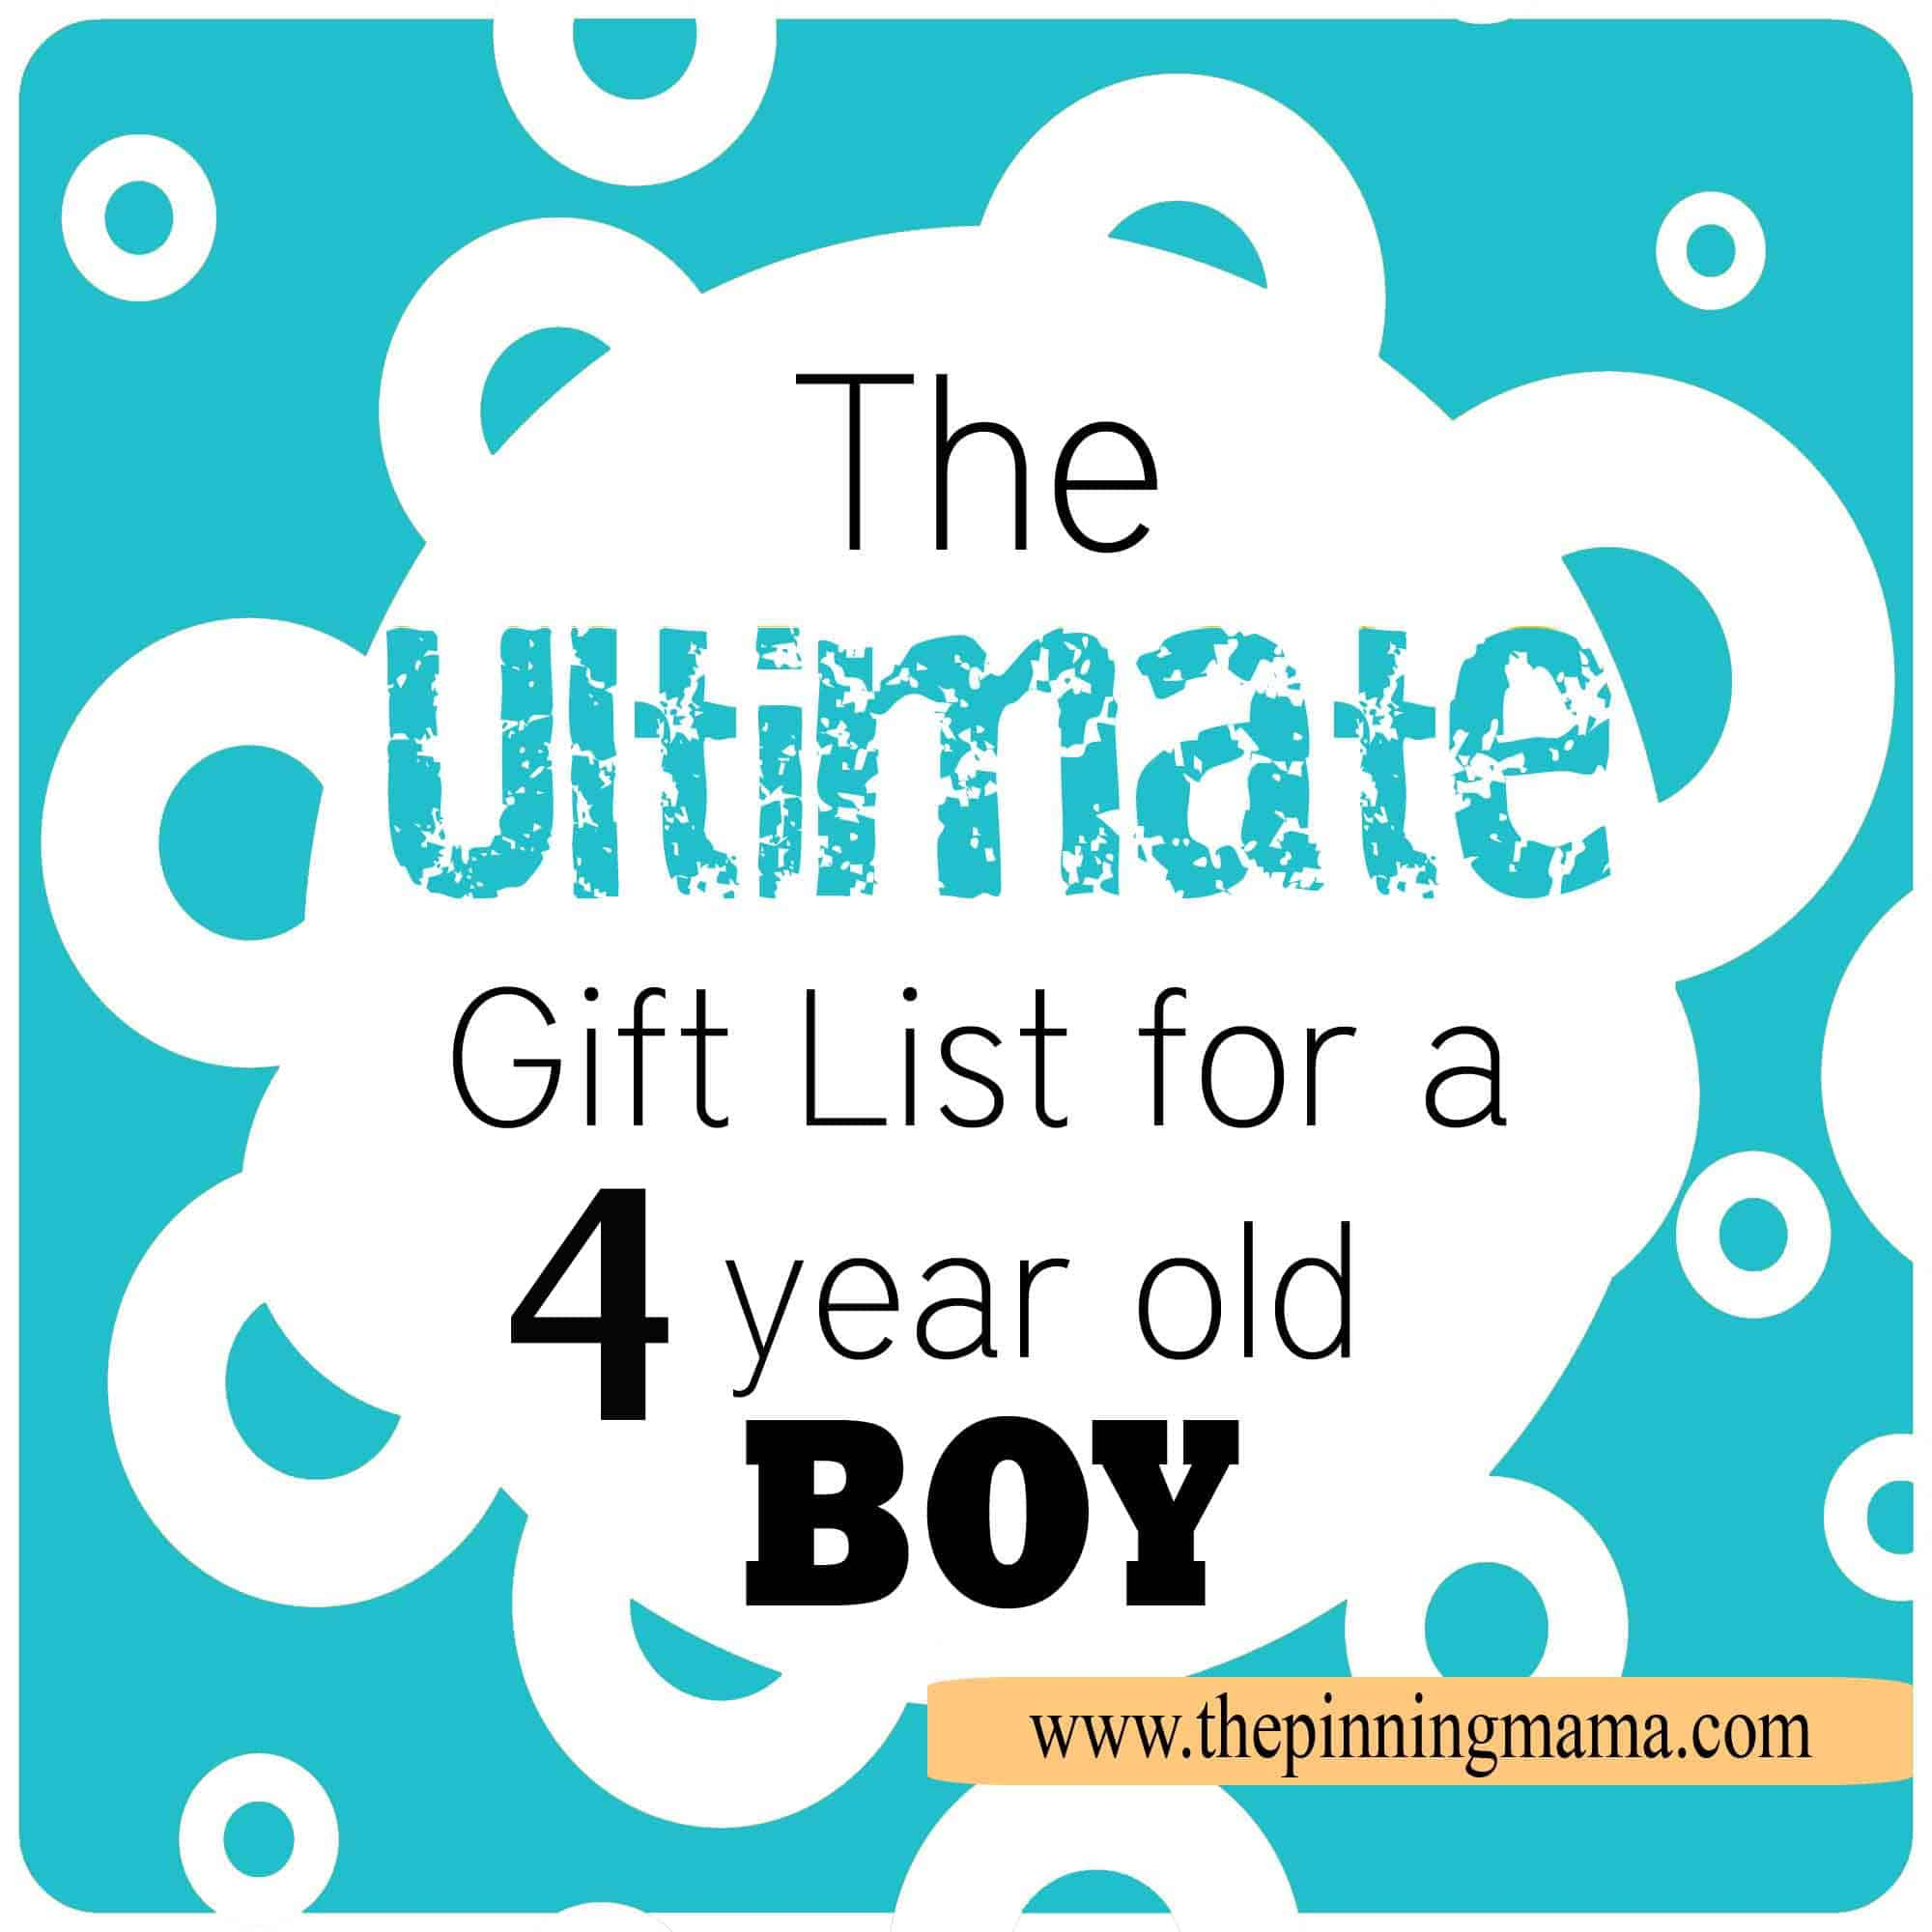 The Best Gift Ideas for a 4 Year Old Boy